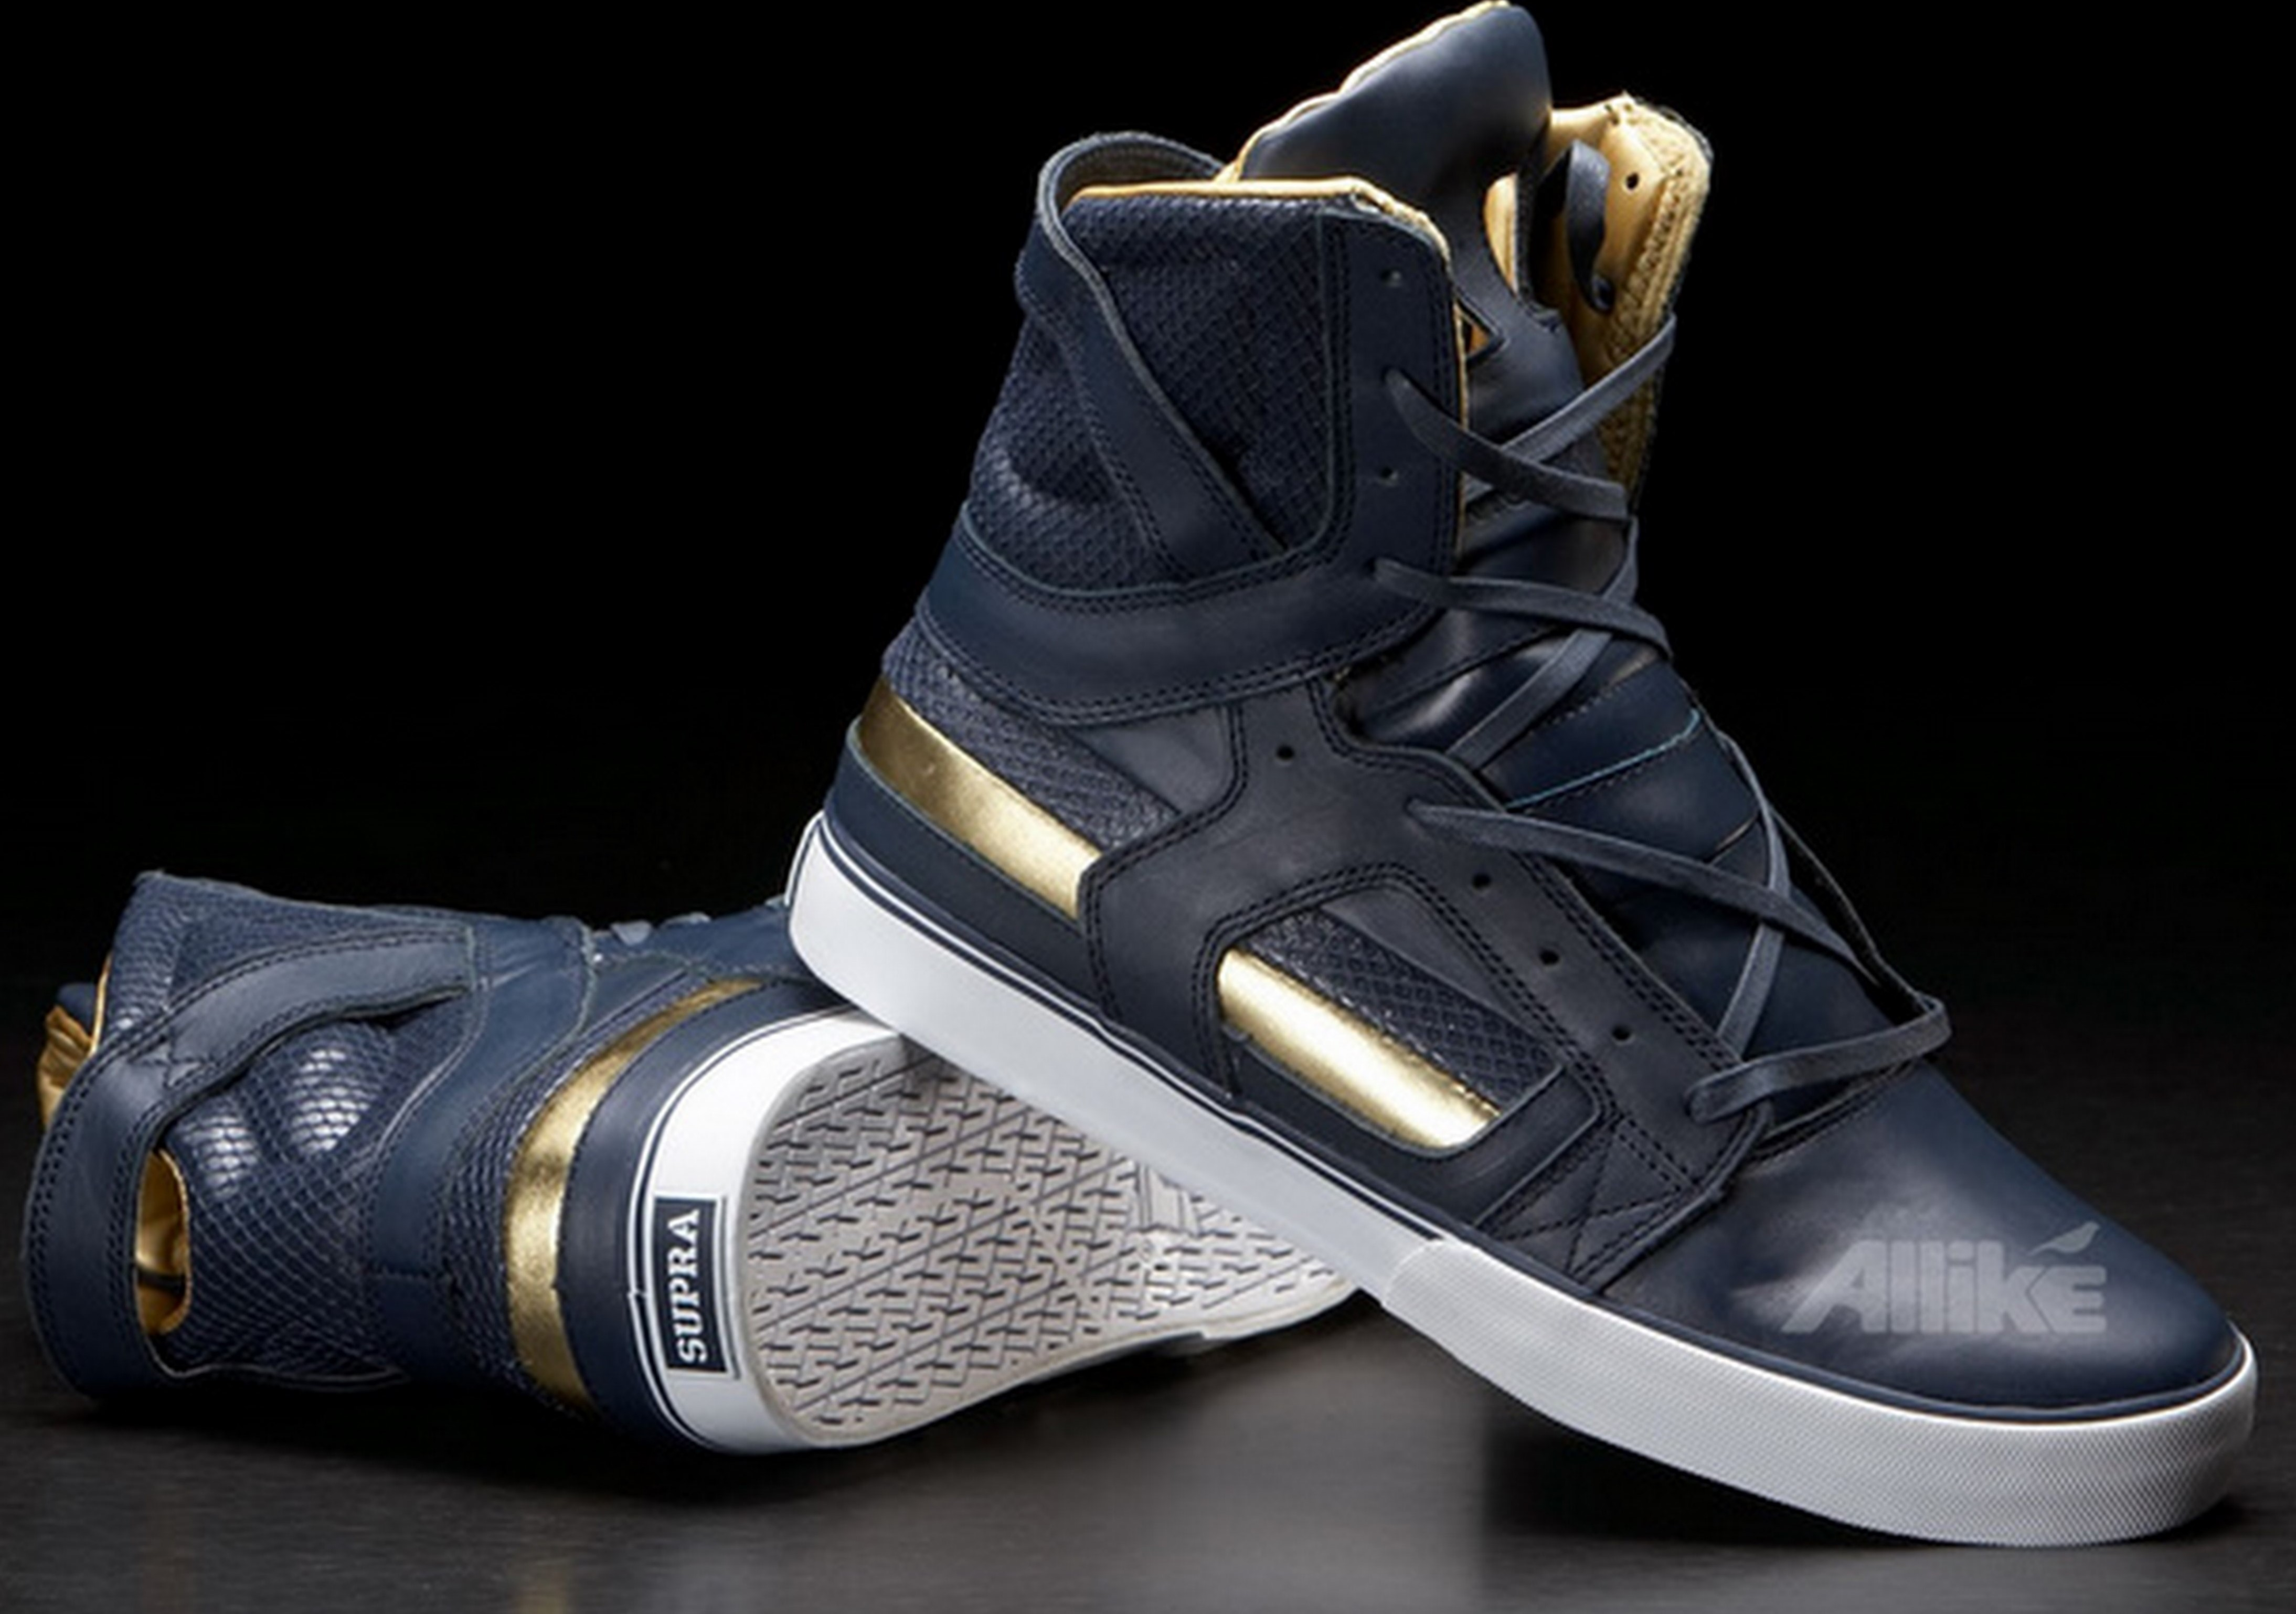 Black And Gold Supra Shoes